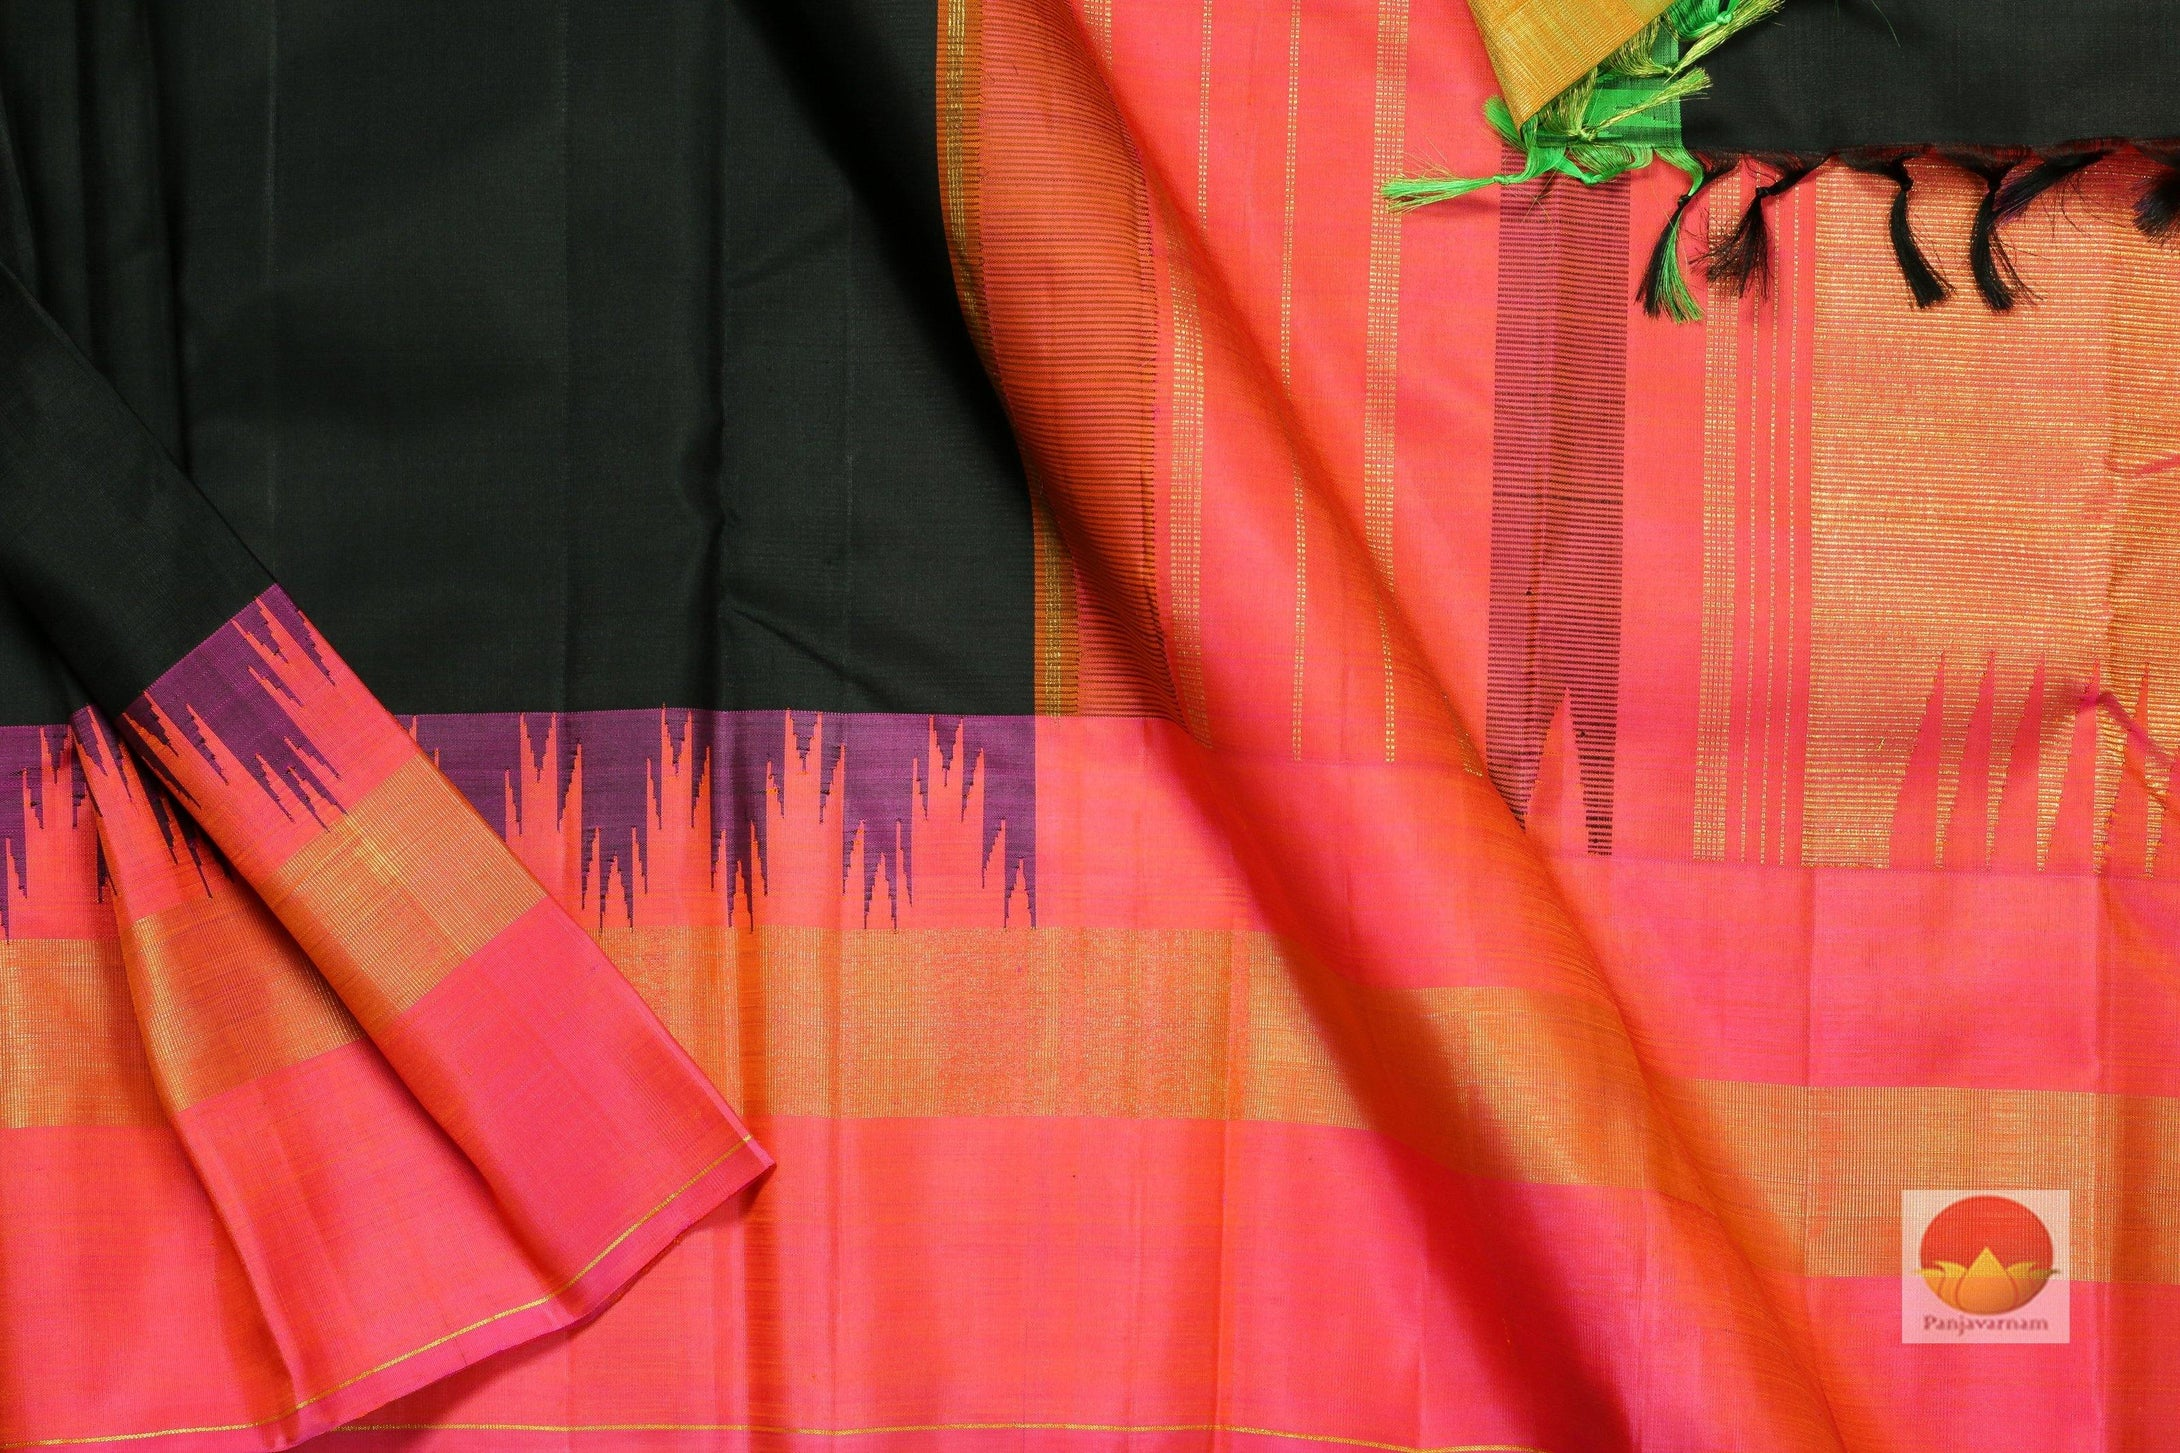 body, border and pallu of black kanjivaram pure silk saree